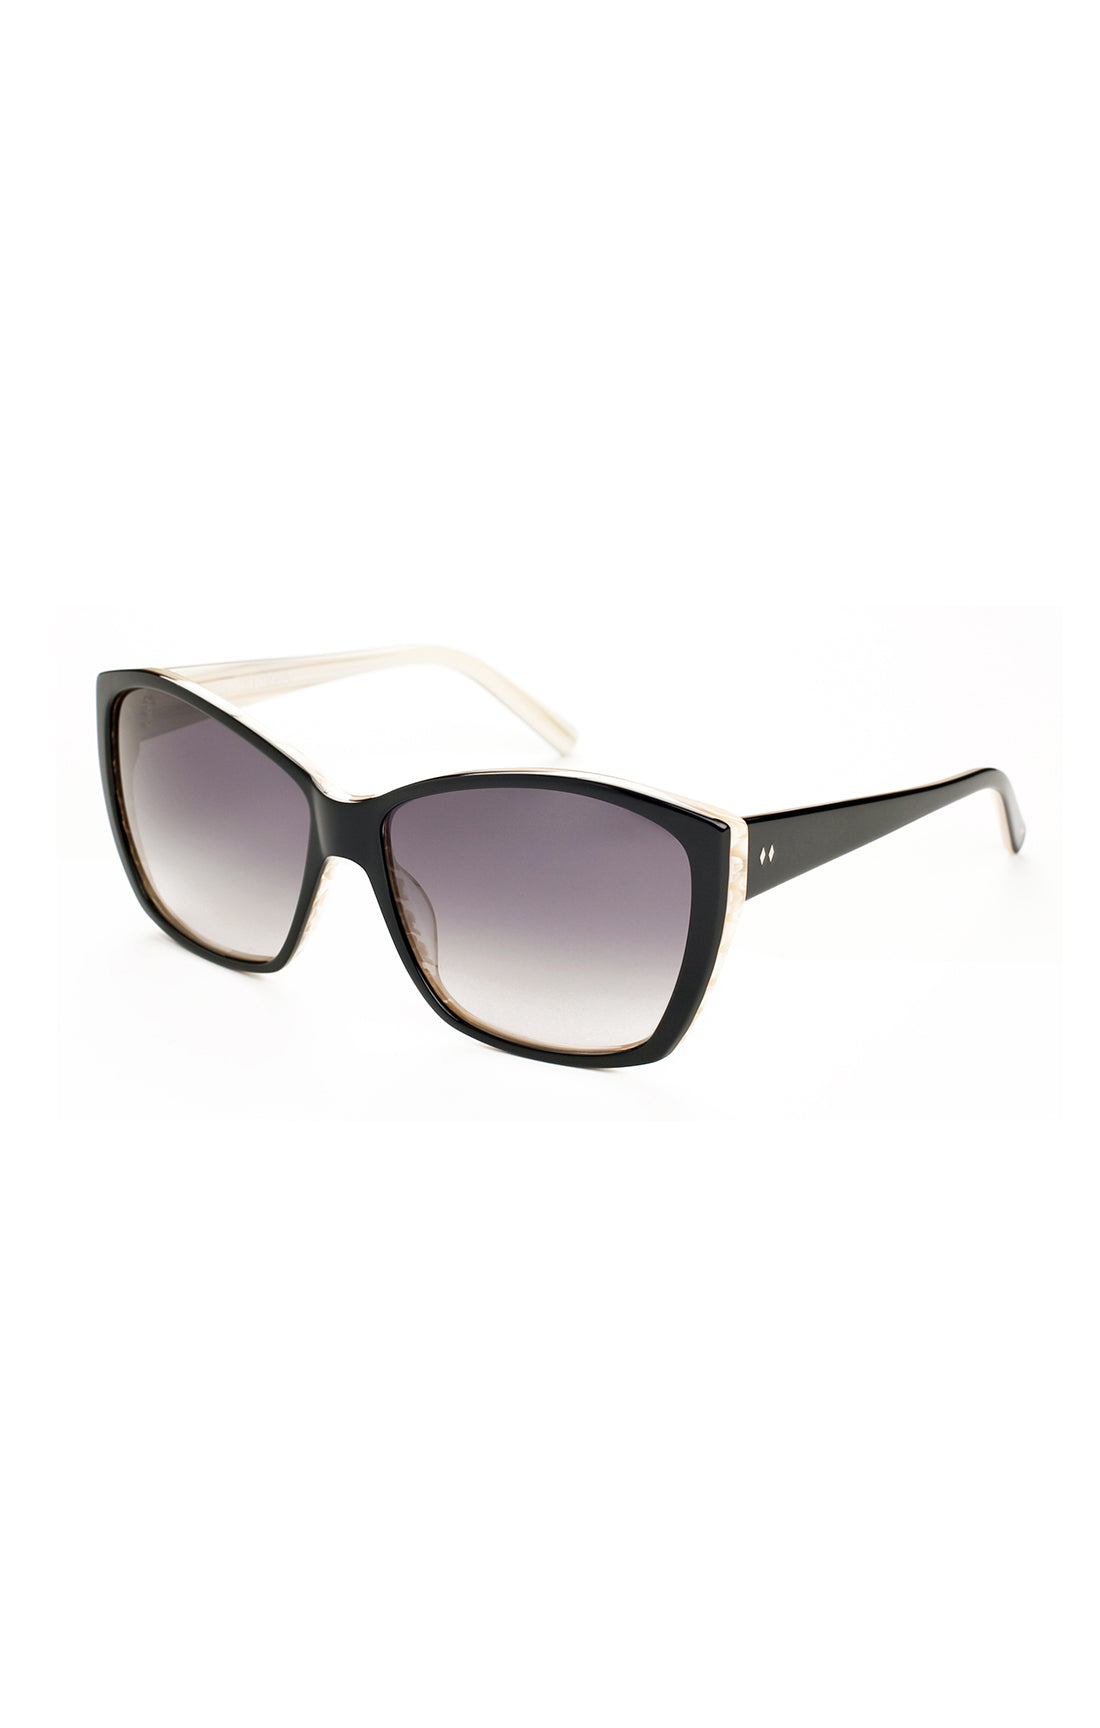 The LE SABOTEUR Sunglasses - Black and White Horn Frames w/ Smoked Gradient Lenses